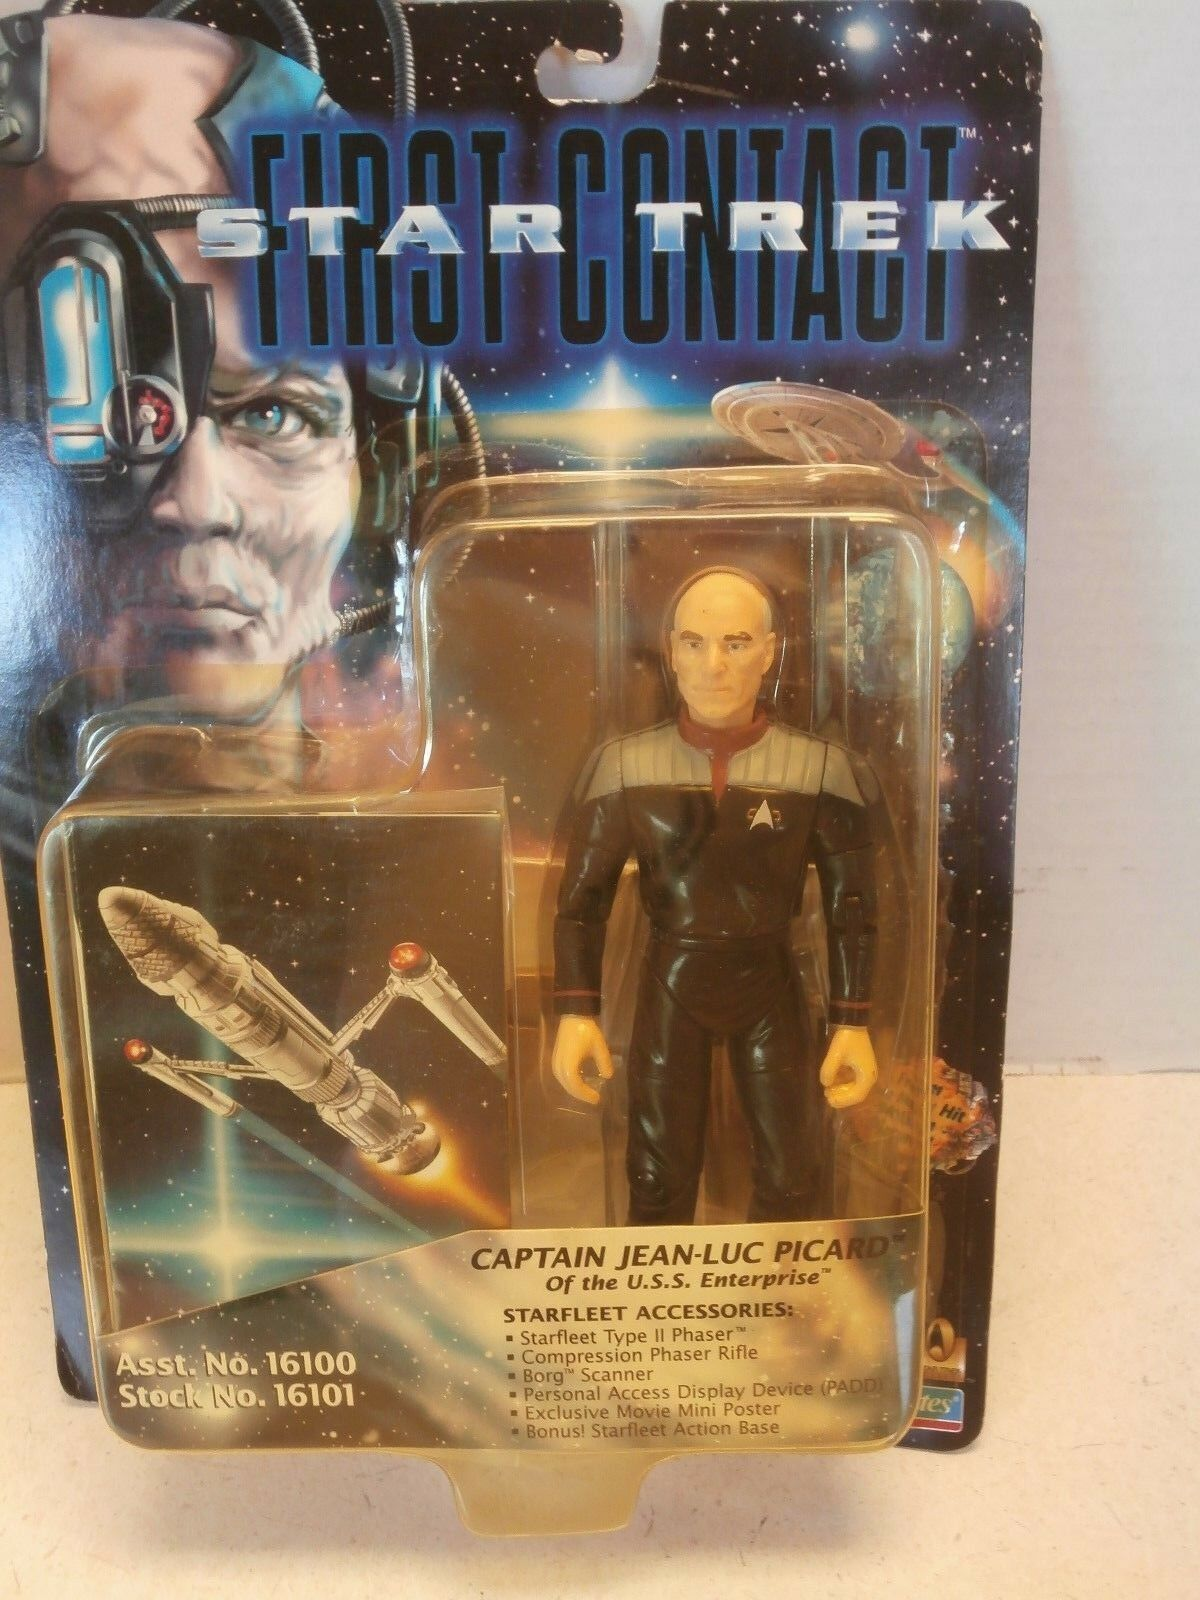 STAR TREK FIRST CONTACT CAPTAIN JEAN-LUC PICARD OF THE U.S.S. ENTERPRISE TOY